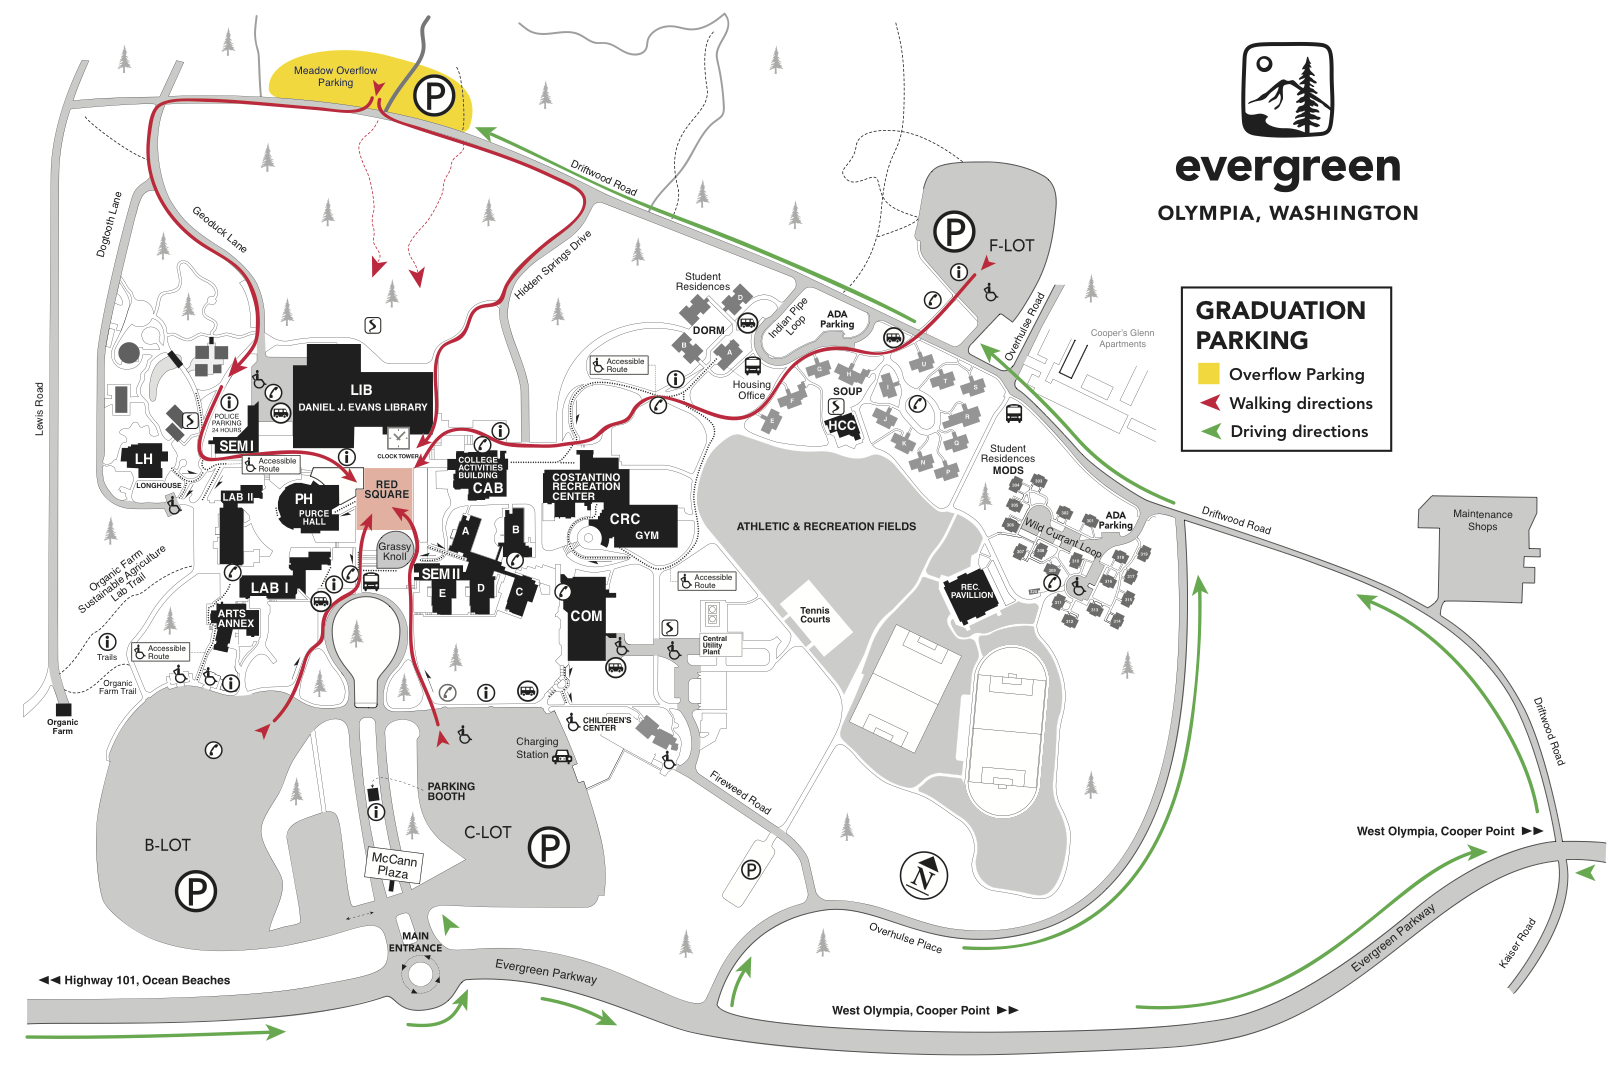 Map of Evergreen's campus with parking areas for graduation day.